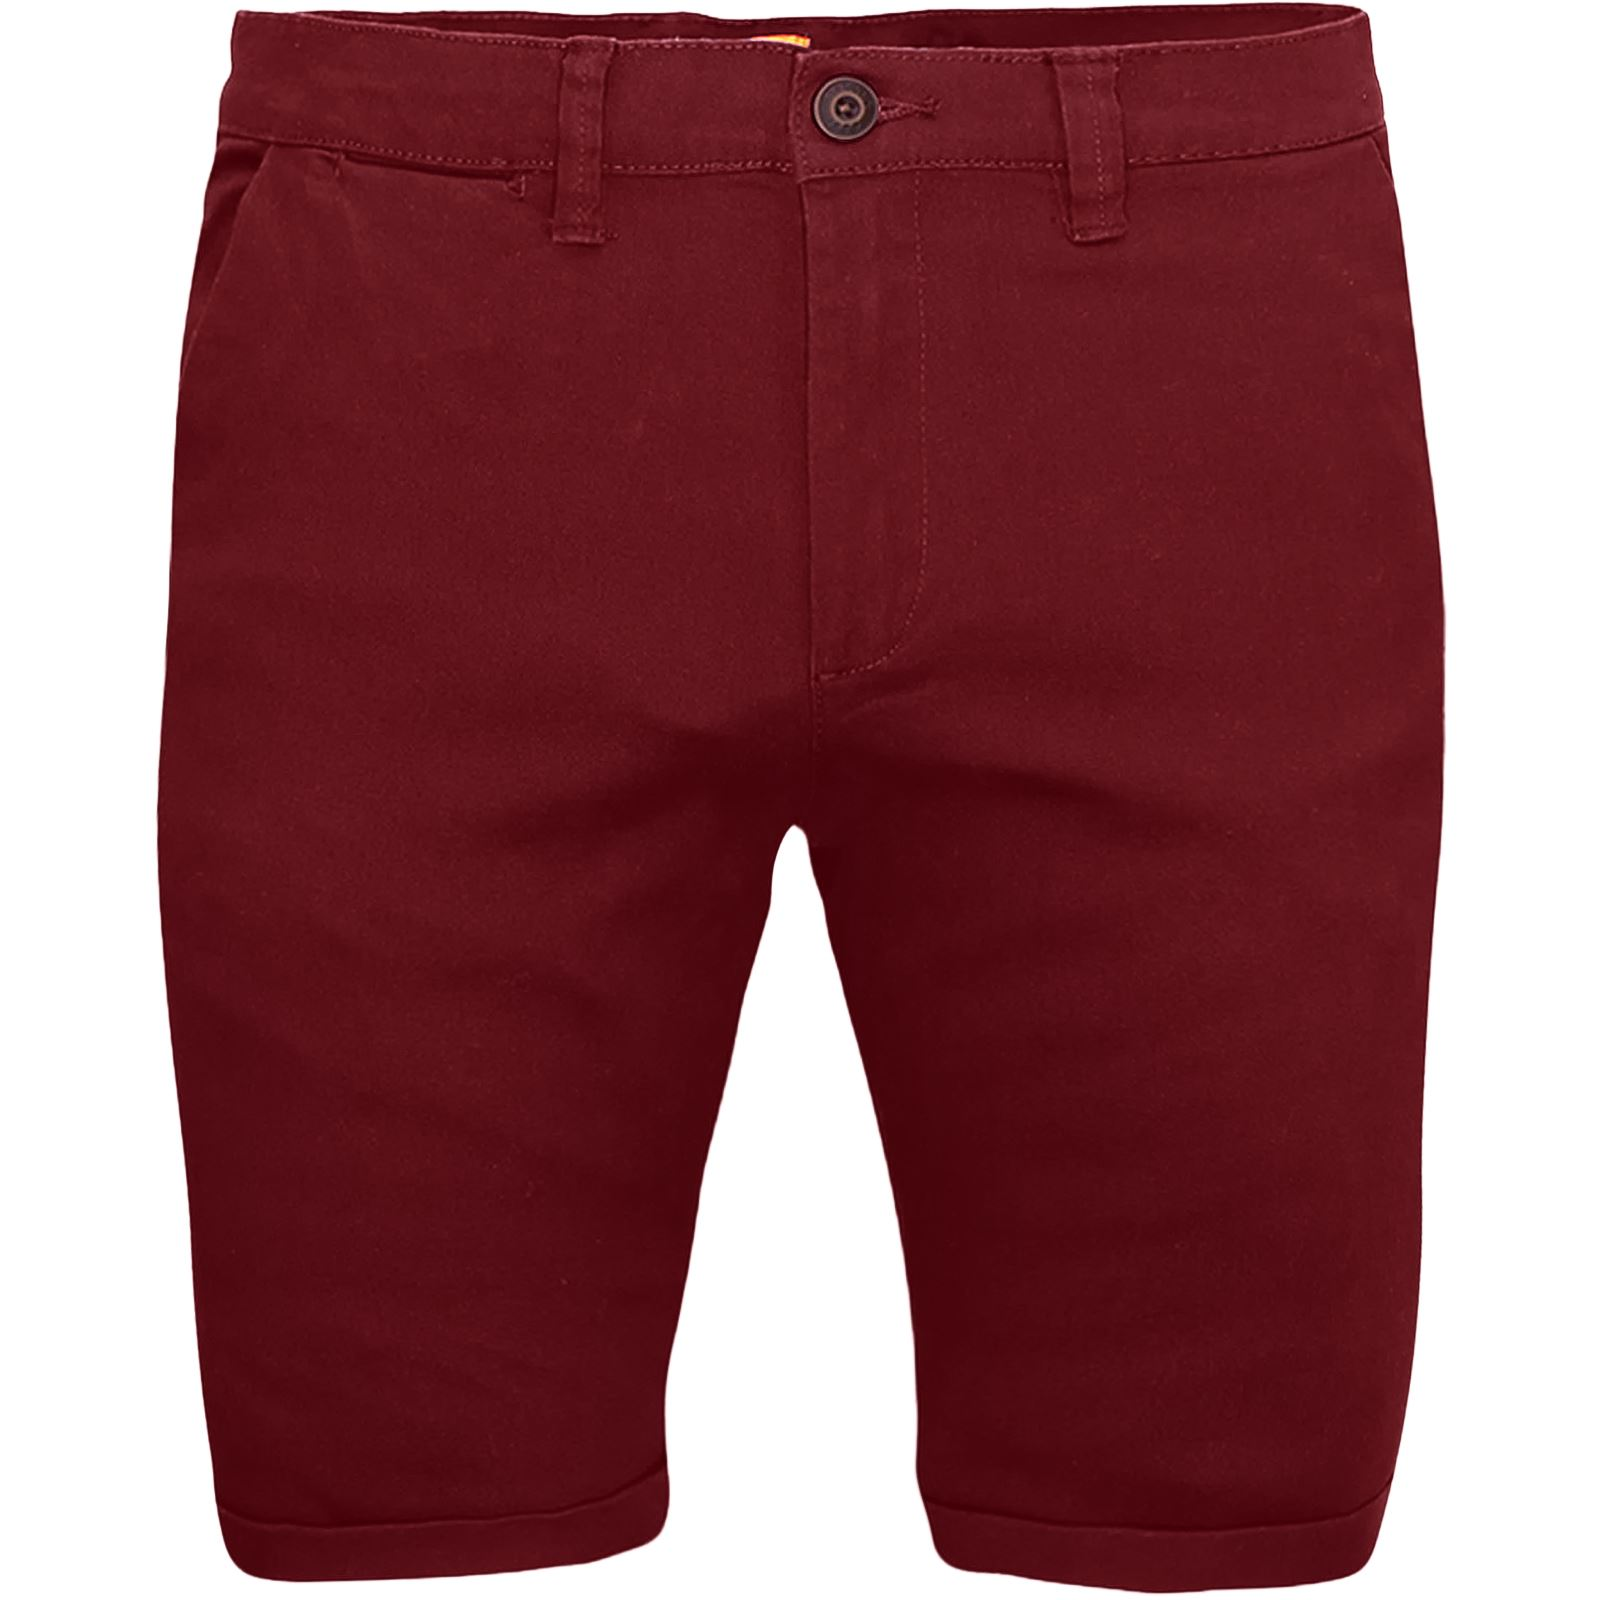 mens stretch chino shorts knee length cotton jeans summer ca